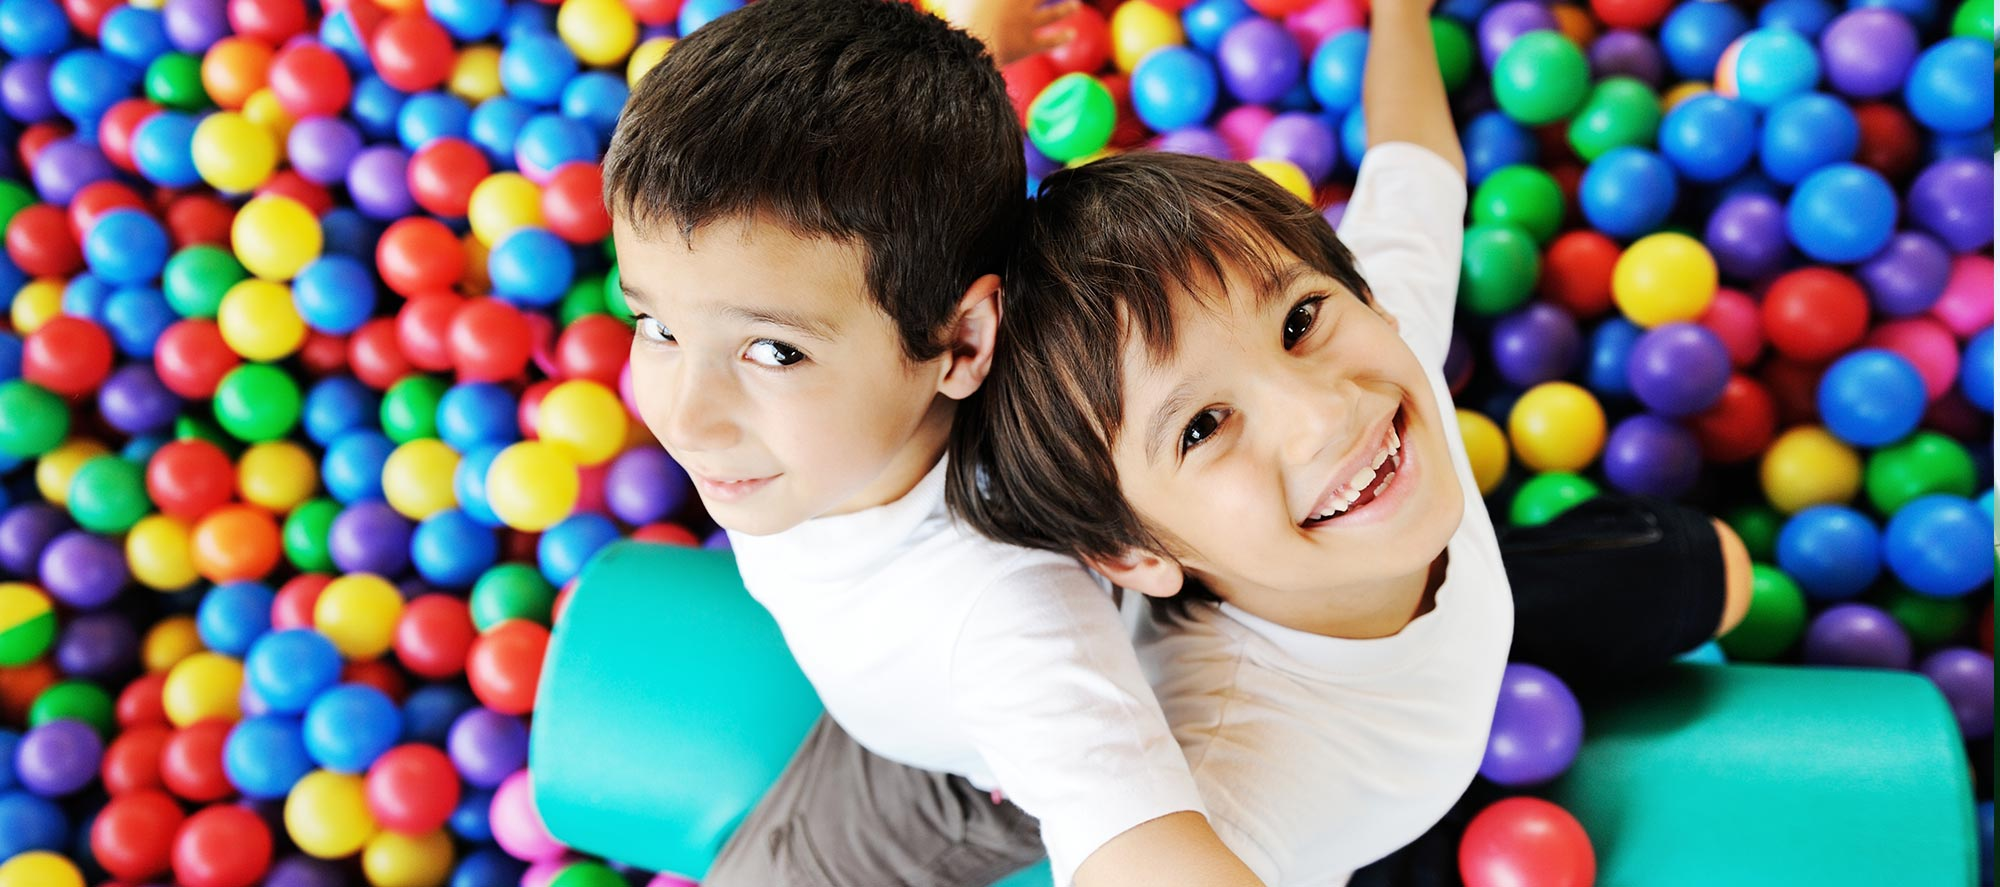 Boys in ballpit - Pediatric Dentist in Madison, MS